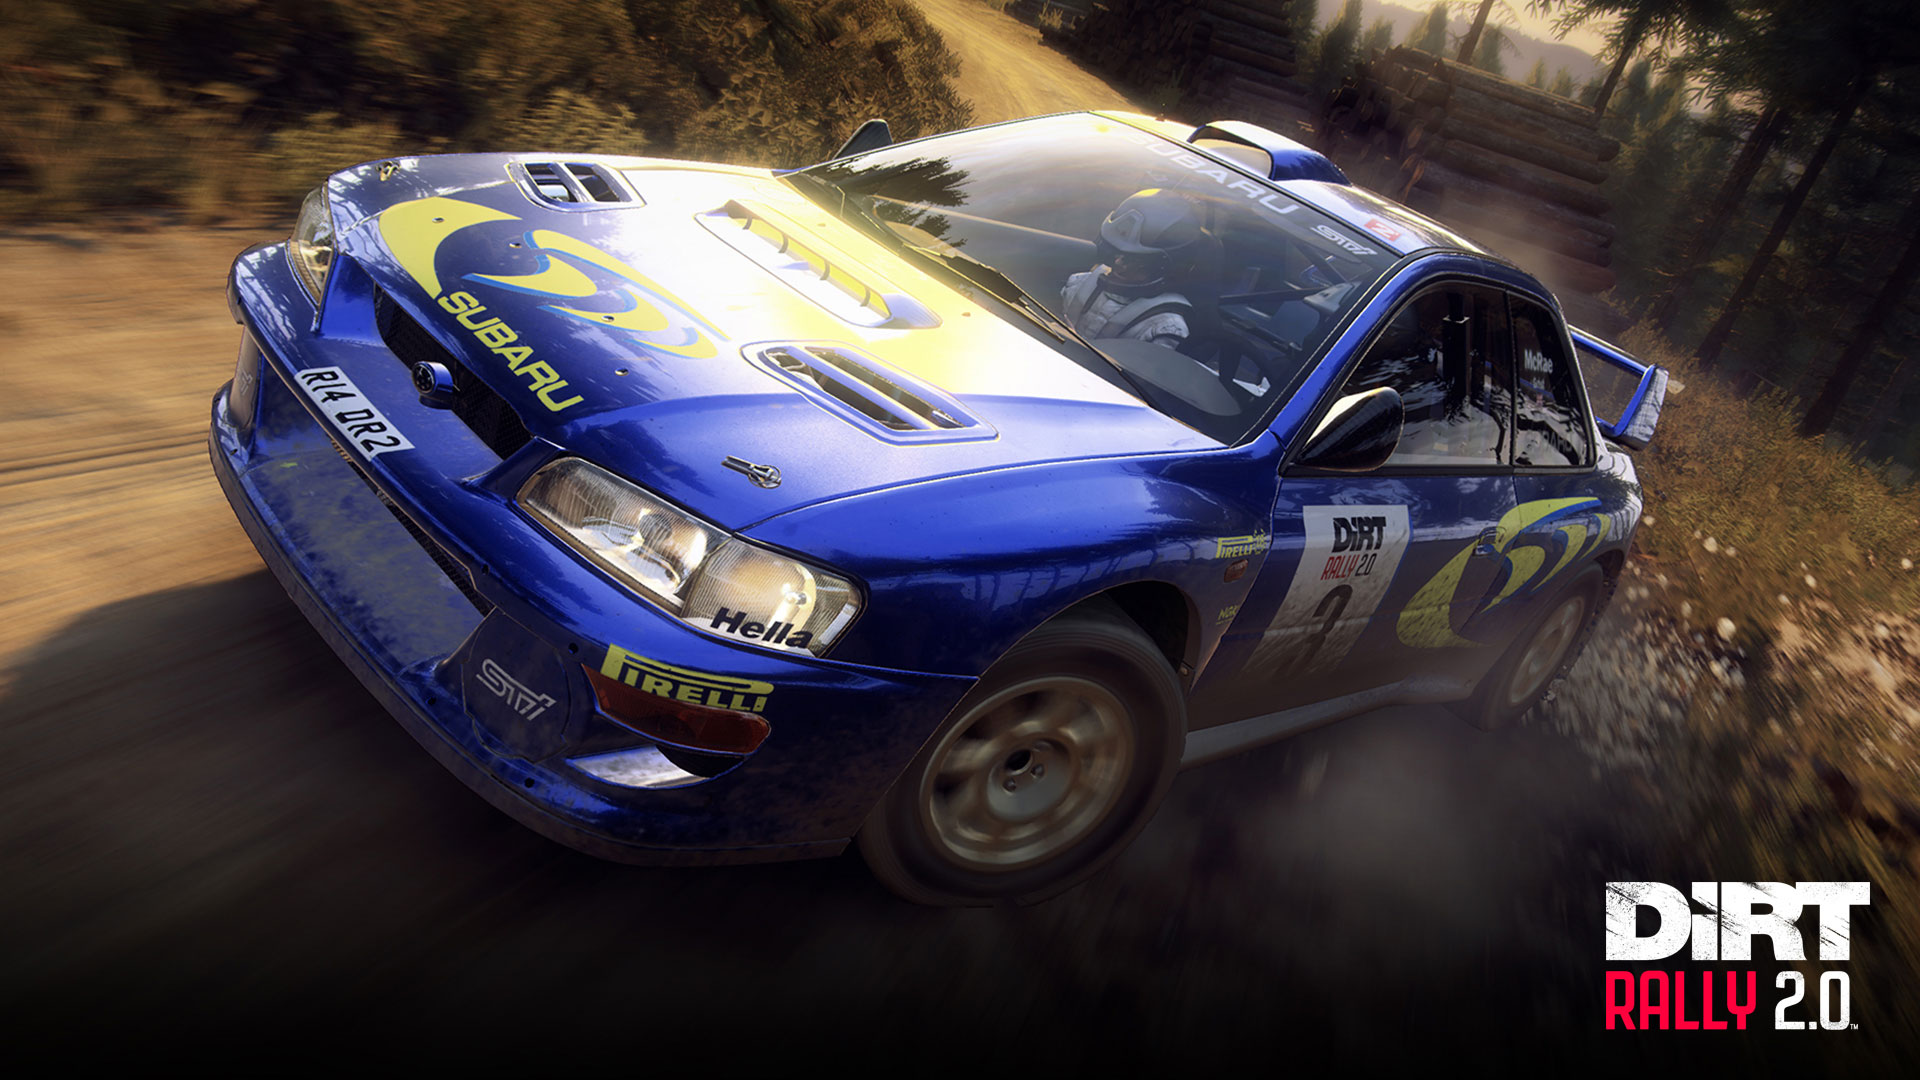 dirt rally 2.0 game year